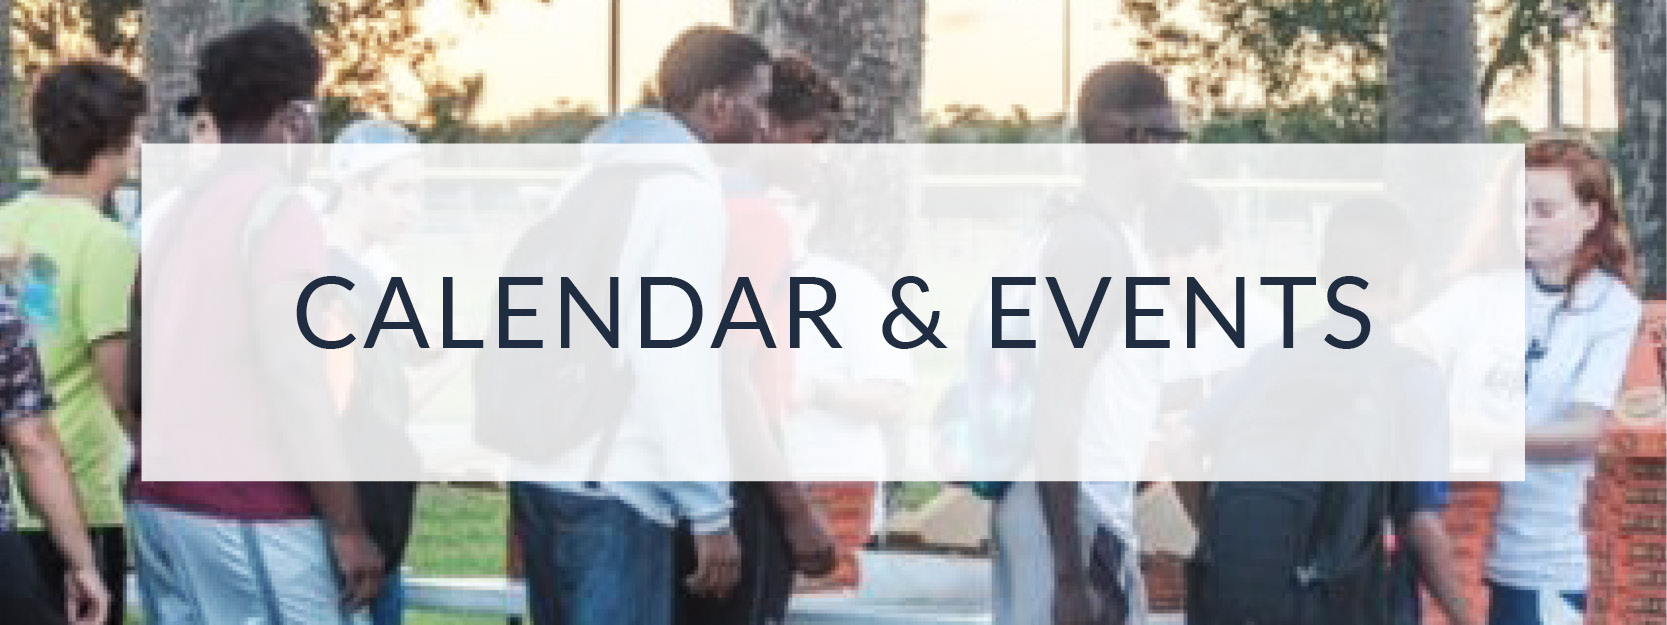 Events & happenings in the life of the church